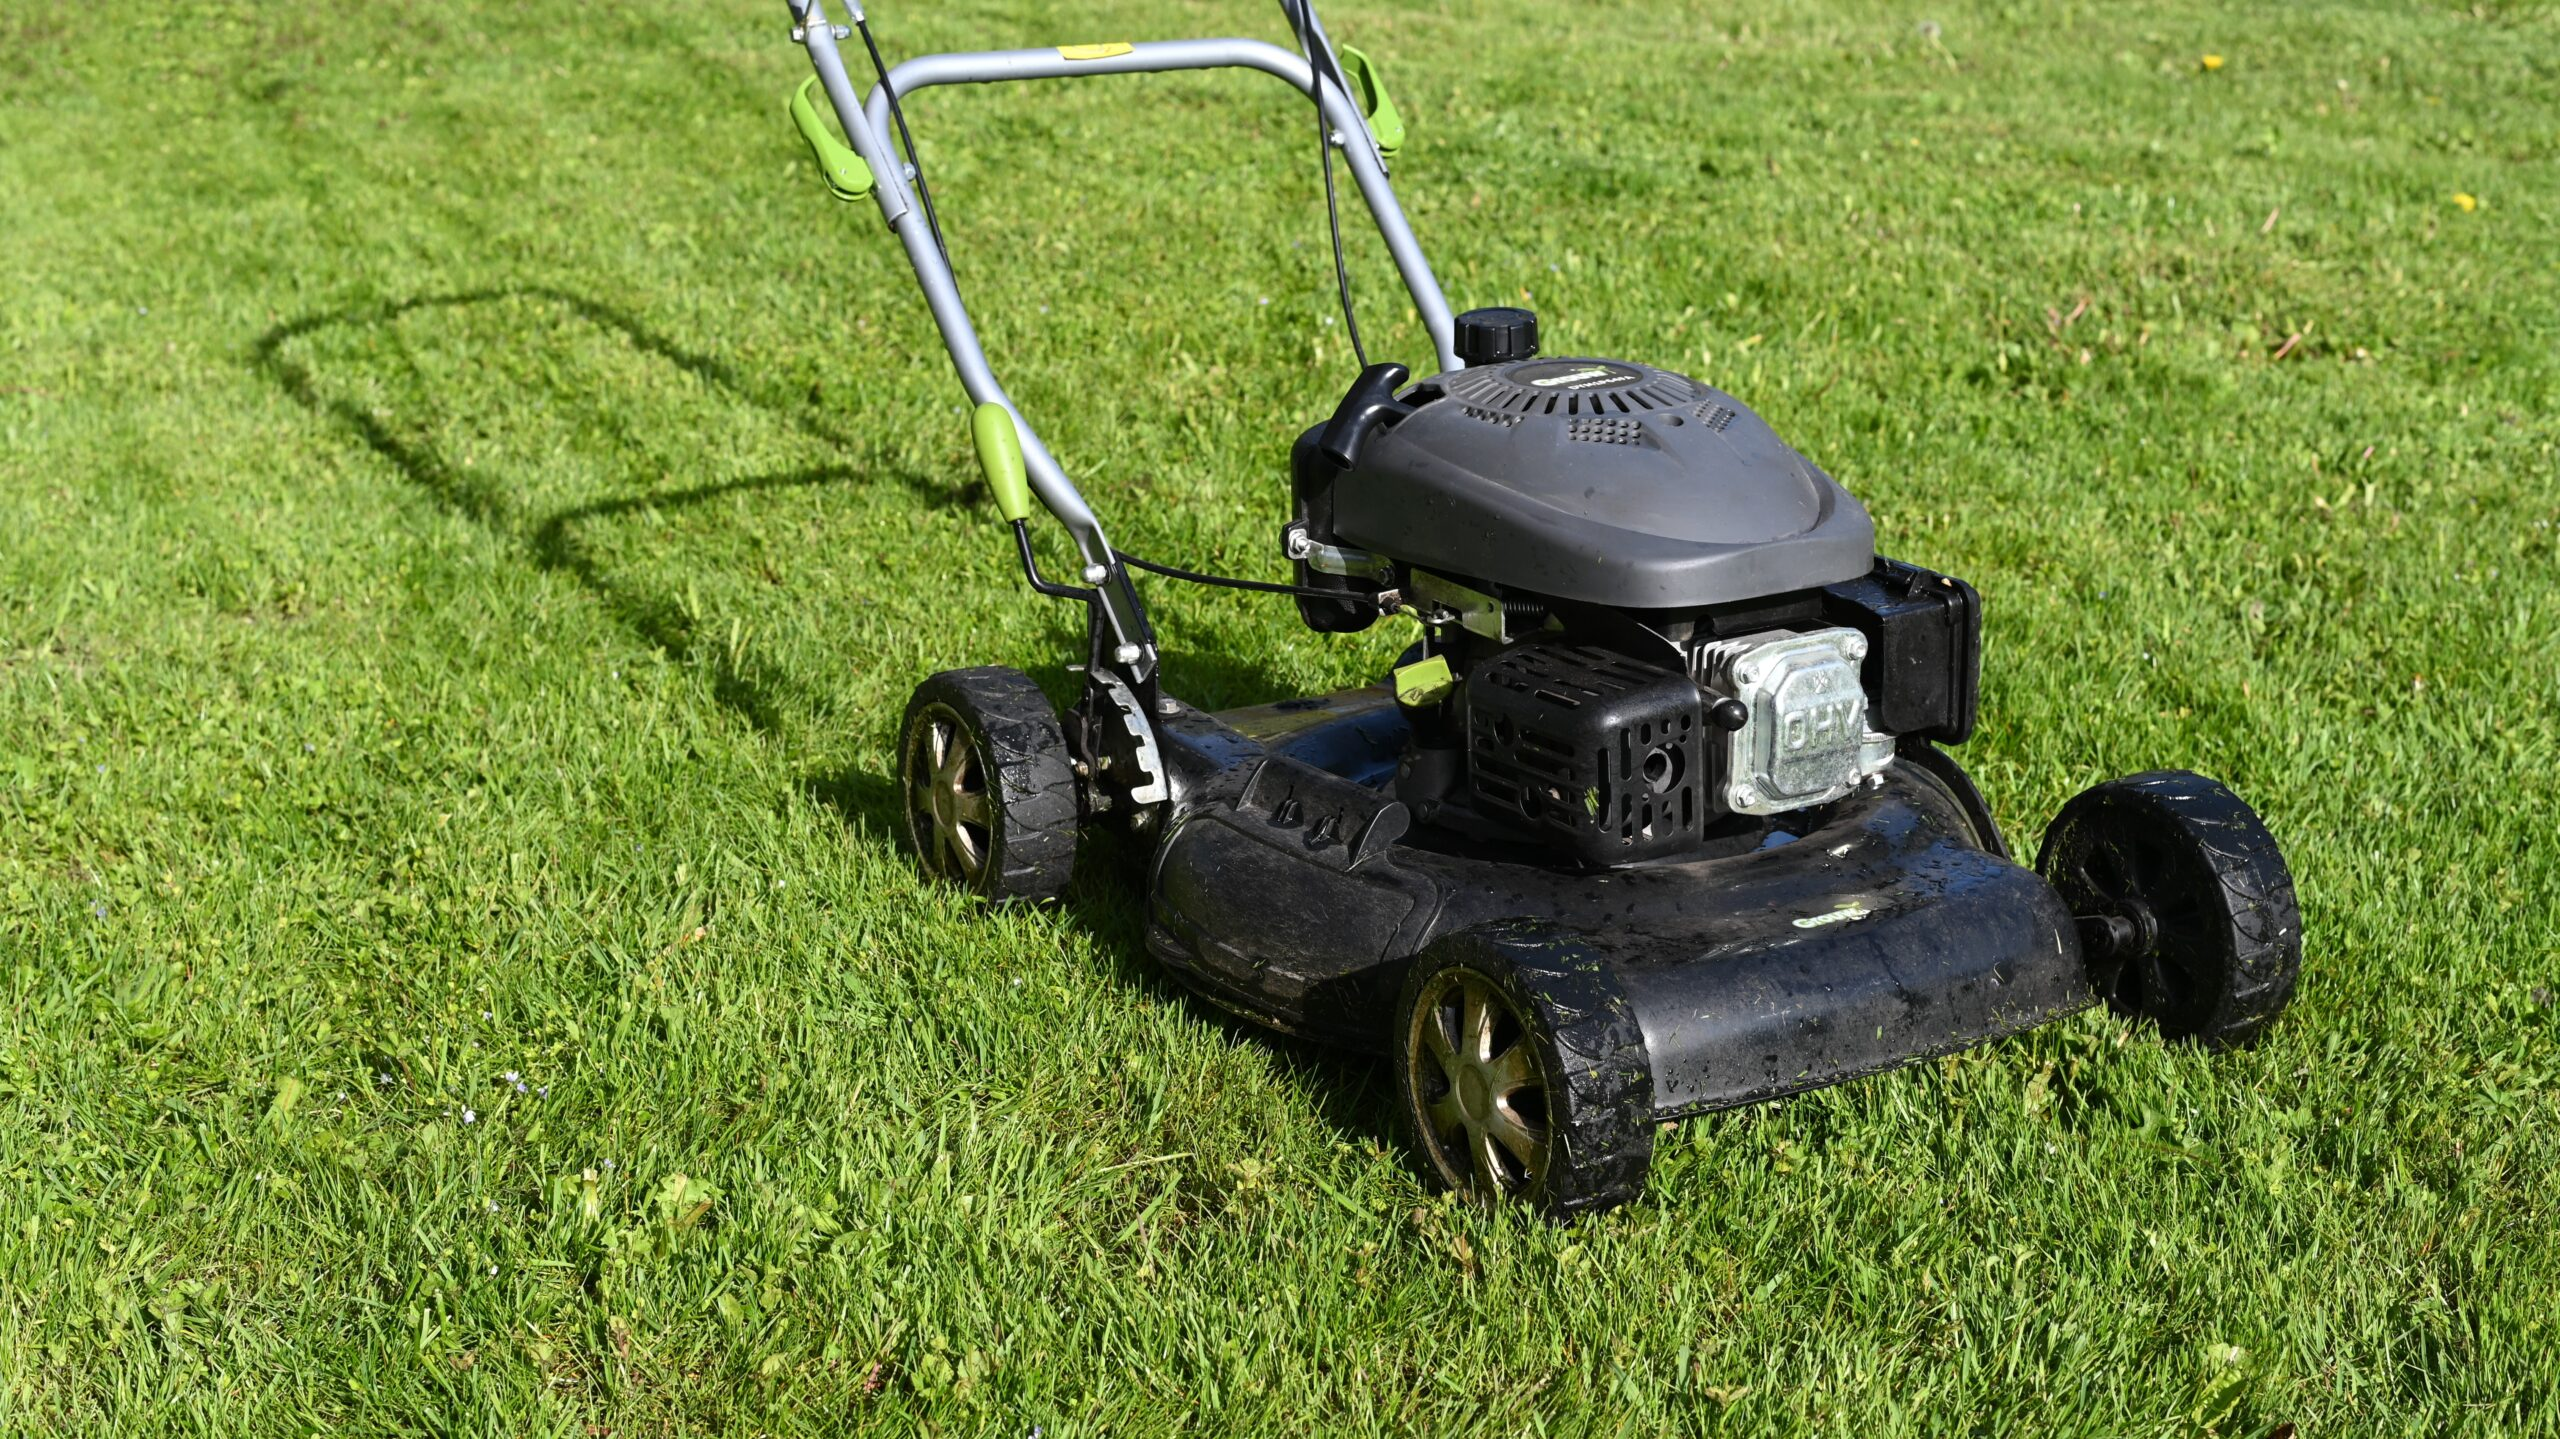 An old, black push lawnmower sitting on a freshly-cut lawn